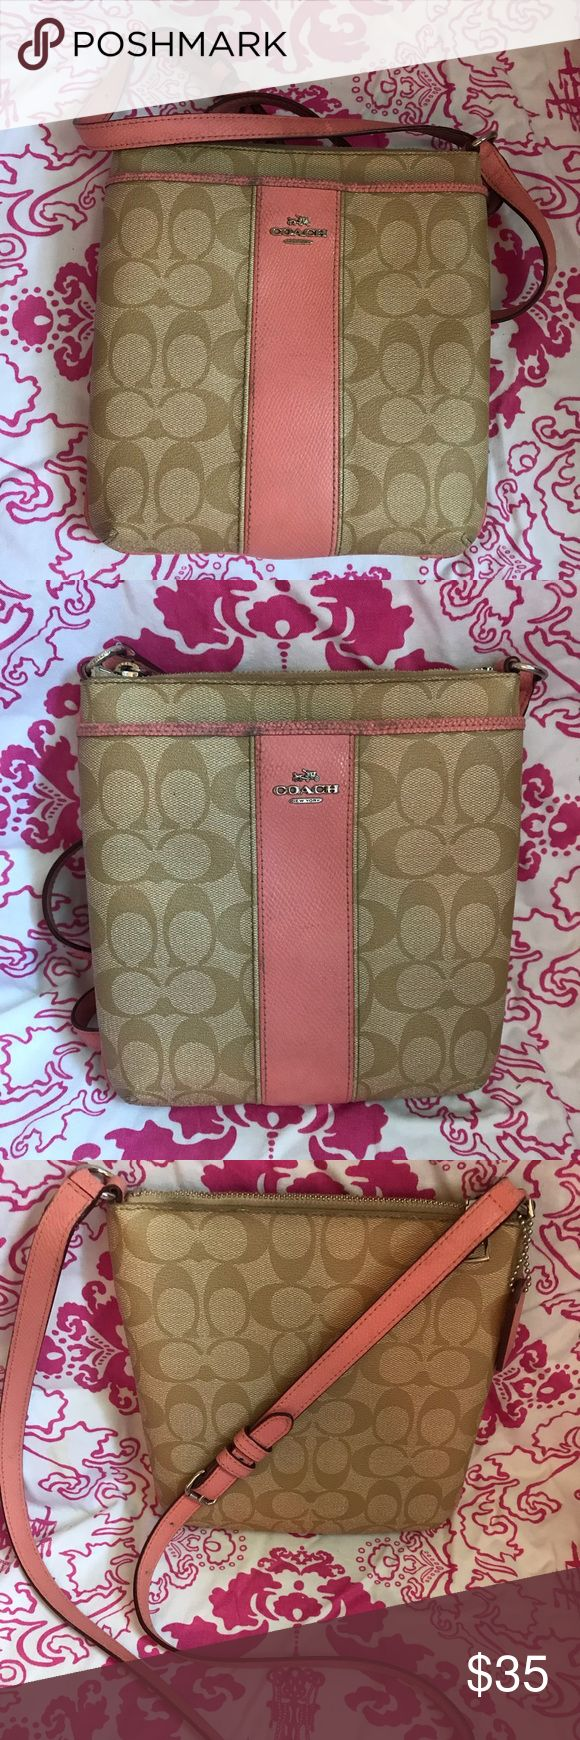 Pink and tan Coach Satchel Pink Coach Satchel, there is a little ware on the strap but still in pretty good condition.  Coach Bags Satchels